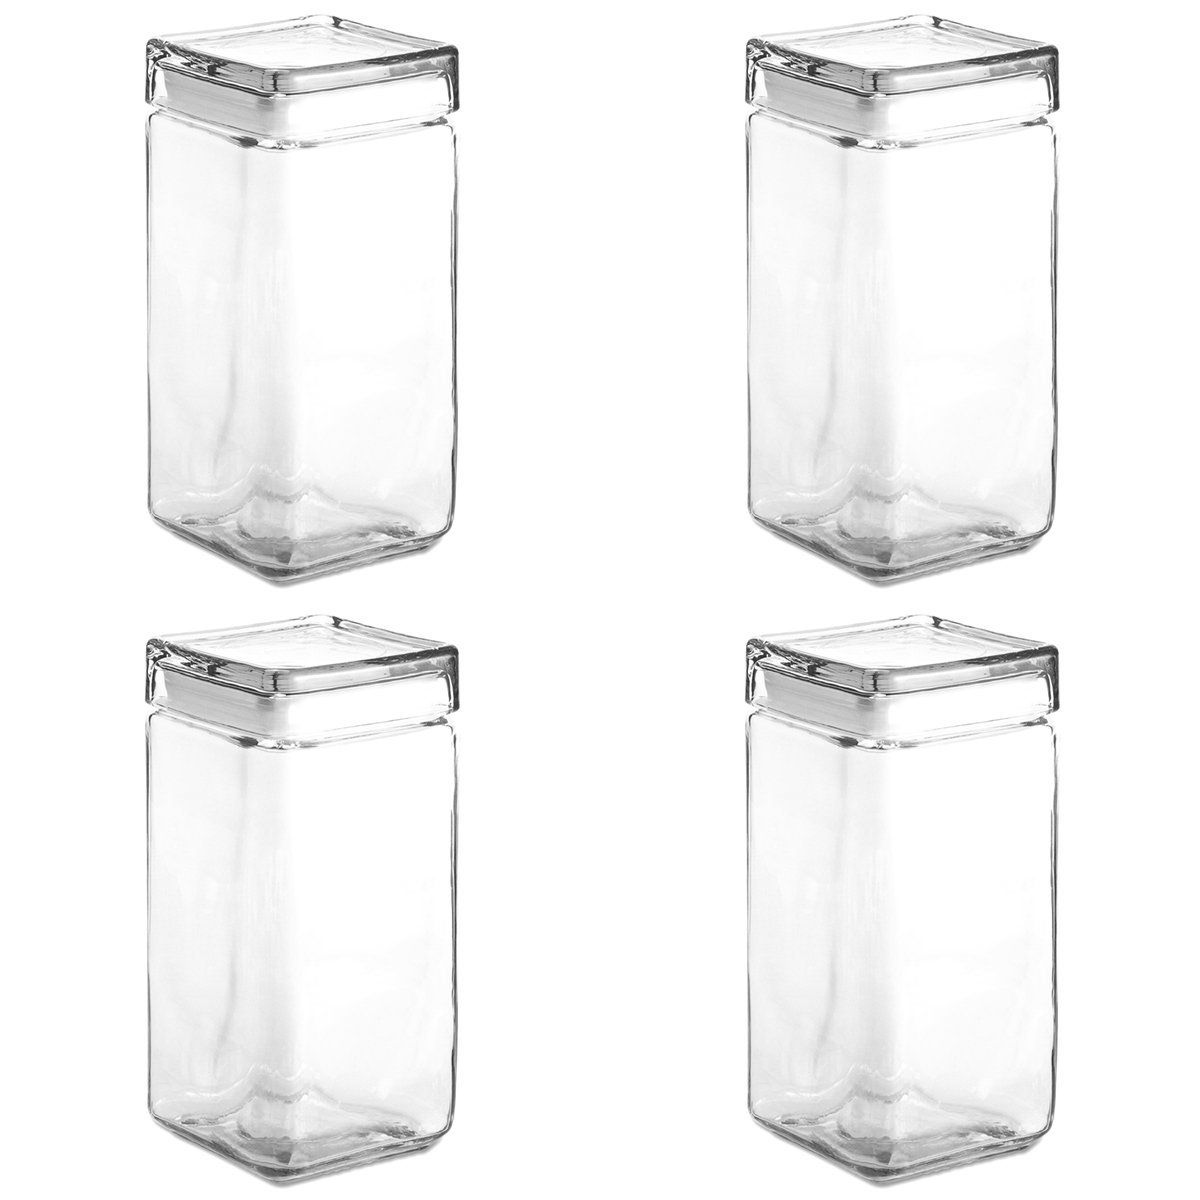 Space in the kitchen by adding shelves and glass canisters with seals - Set Of 4 Anchor Hocking Stackable Glass Storage Jars Containers Airtight Seal Food Storage Canister Hurry Check Out This Great Product Kitchen Storage